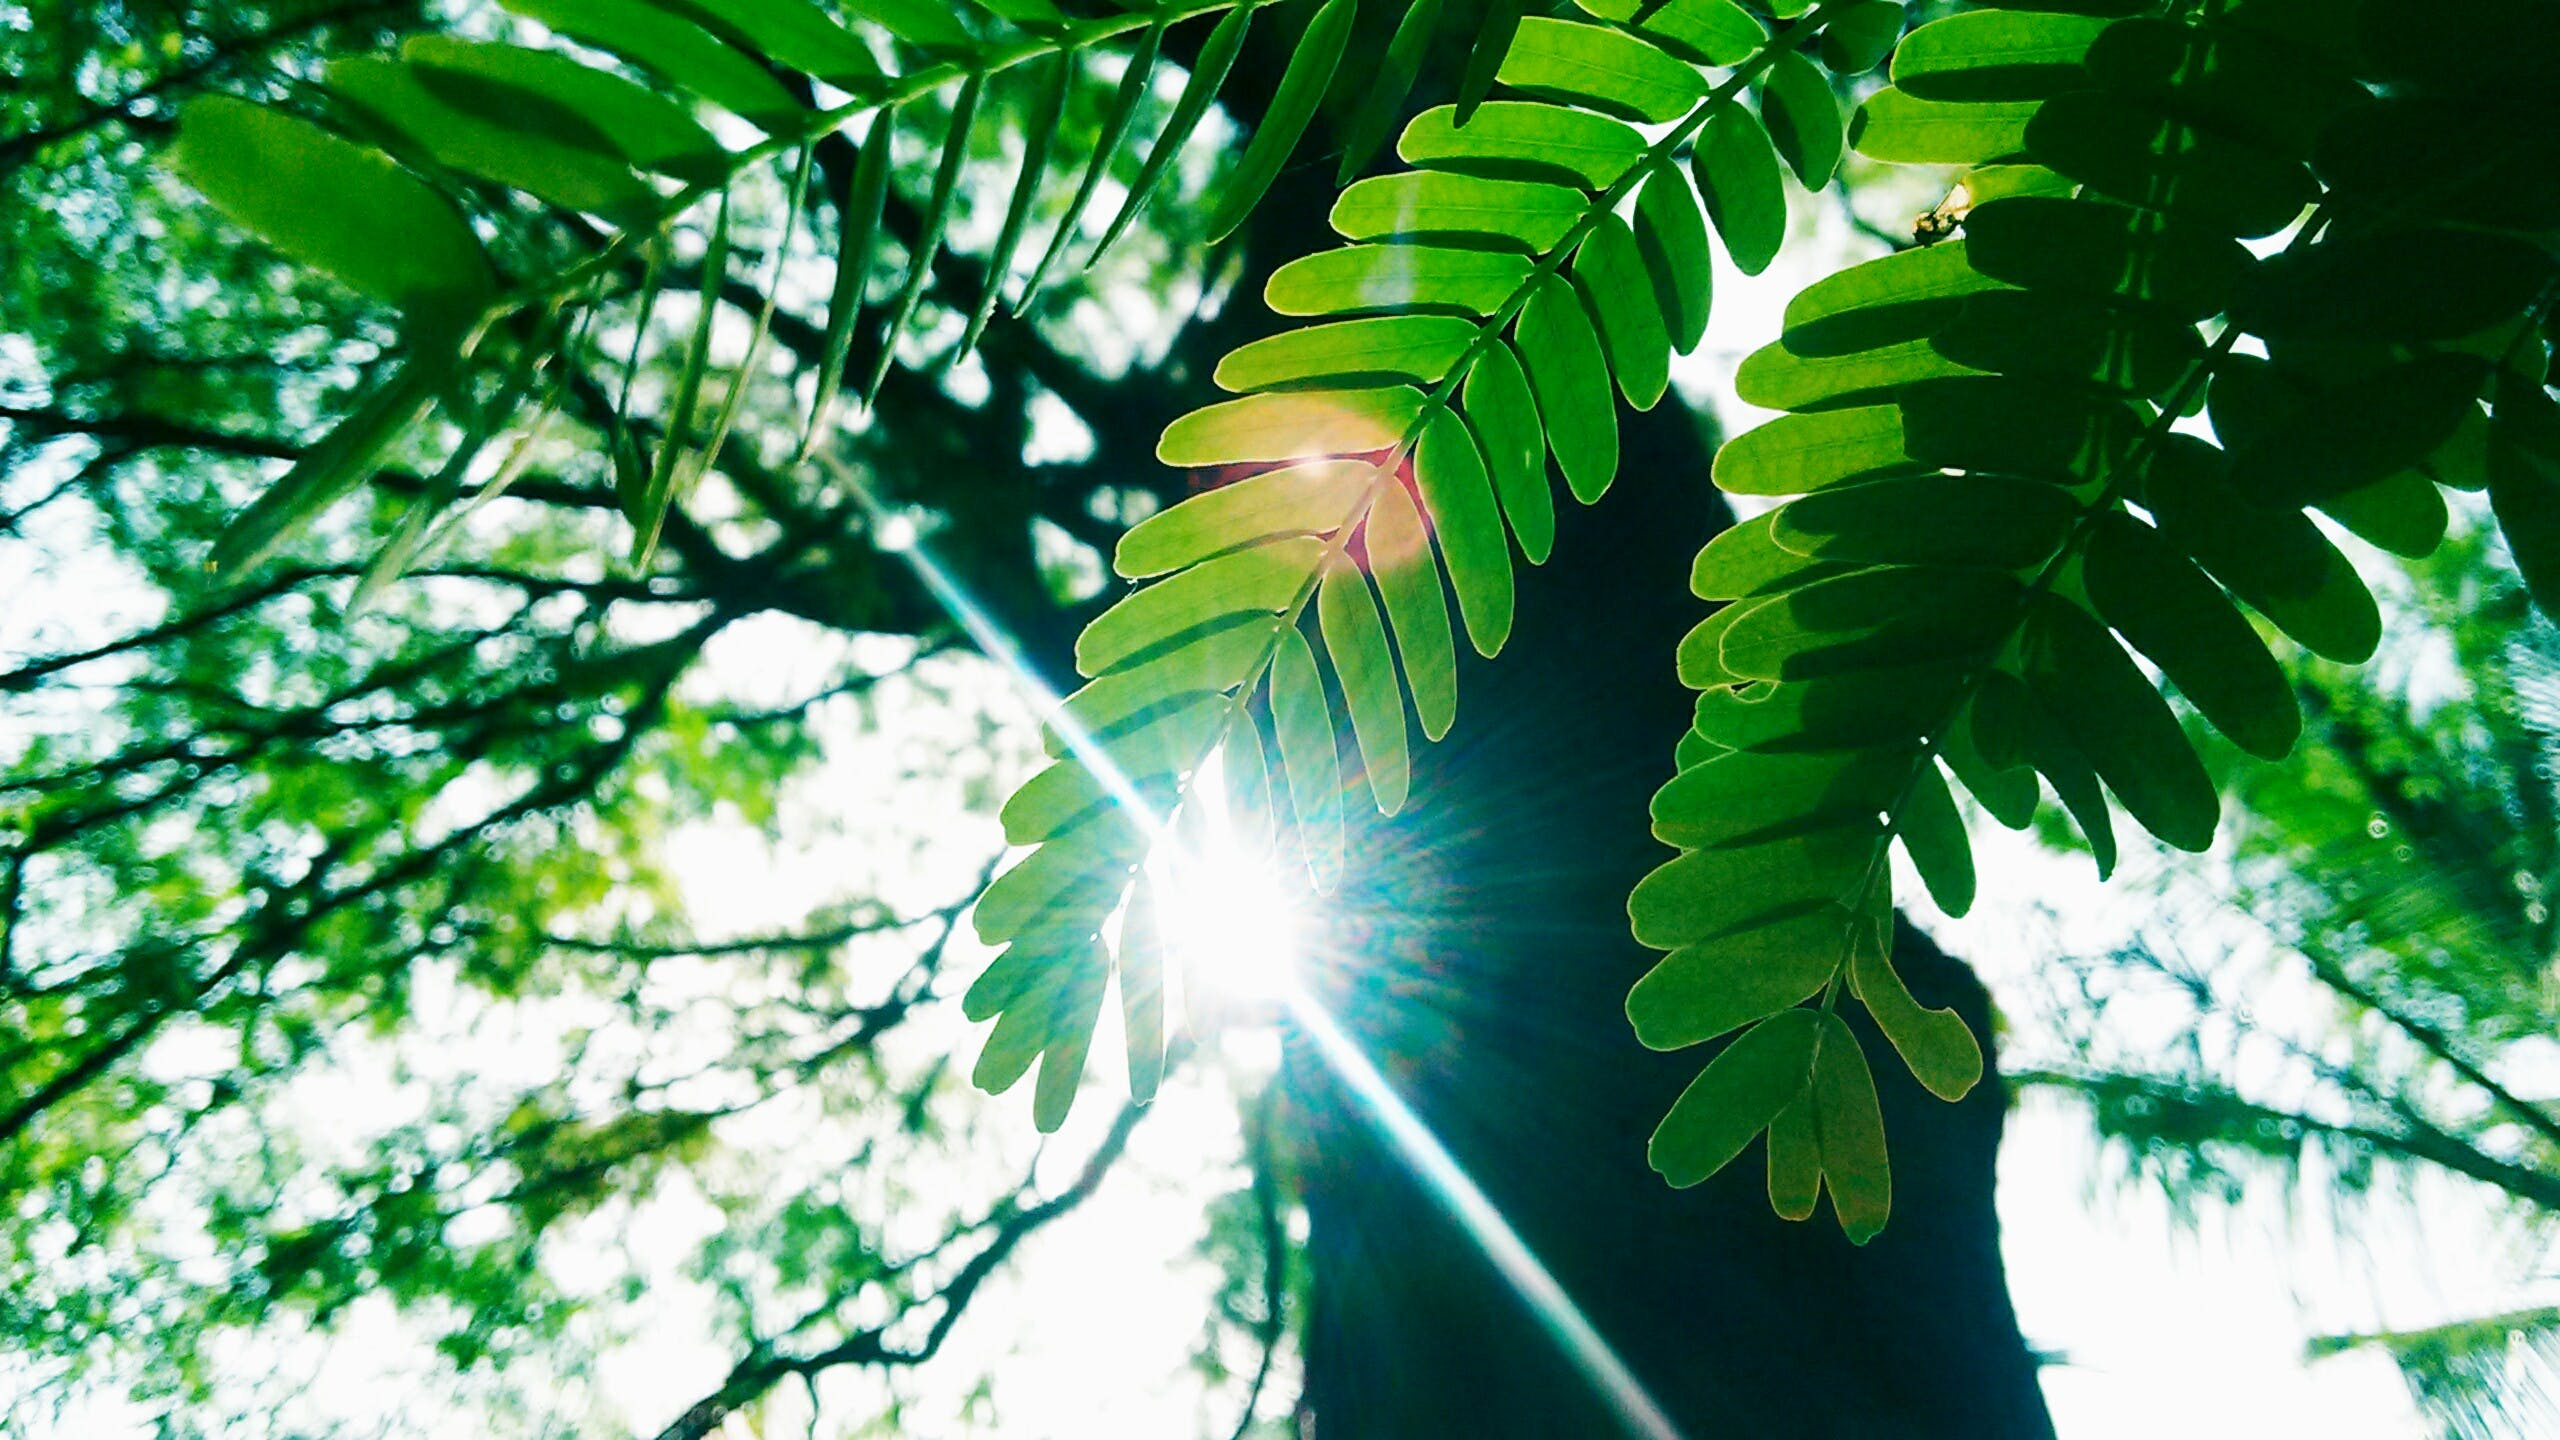 Low Angle Photography of Green Leaves Plant With Tall Forest Tree